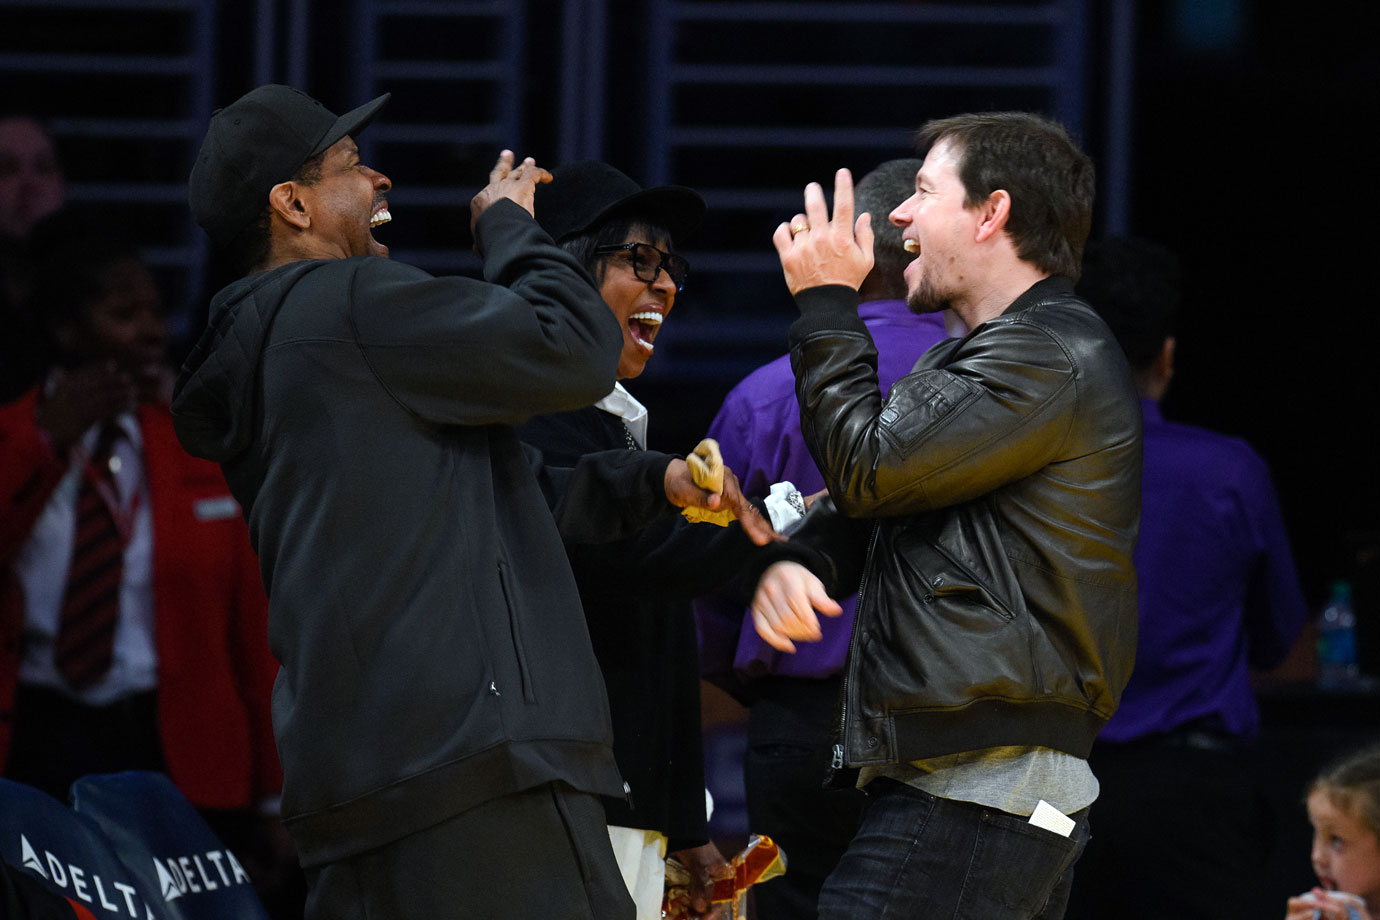 Feb. 27, 2015: Los Angeles Lakers vs. Milwaukee Bucks at Staples Center in Los Angeles